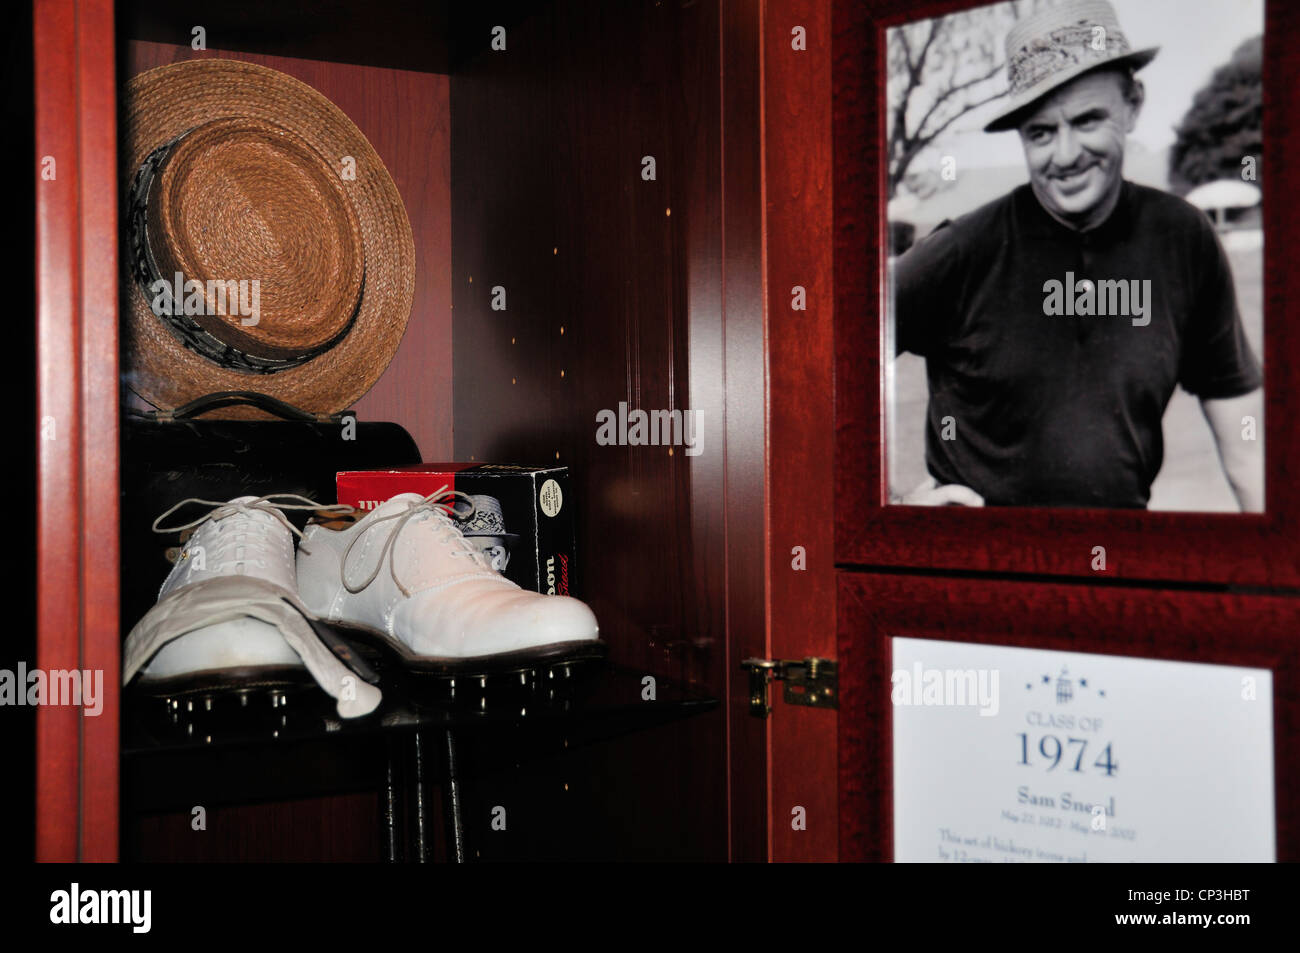 Locker at the World Golf Hall of Fame containing mementos of Sam Snead's career - Stock Image